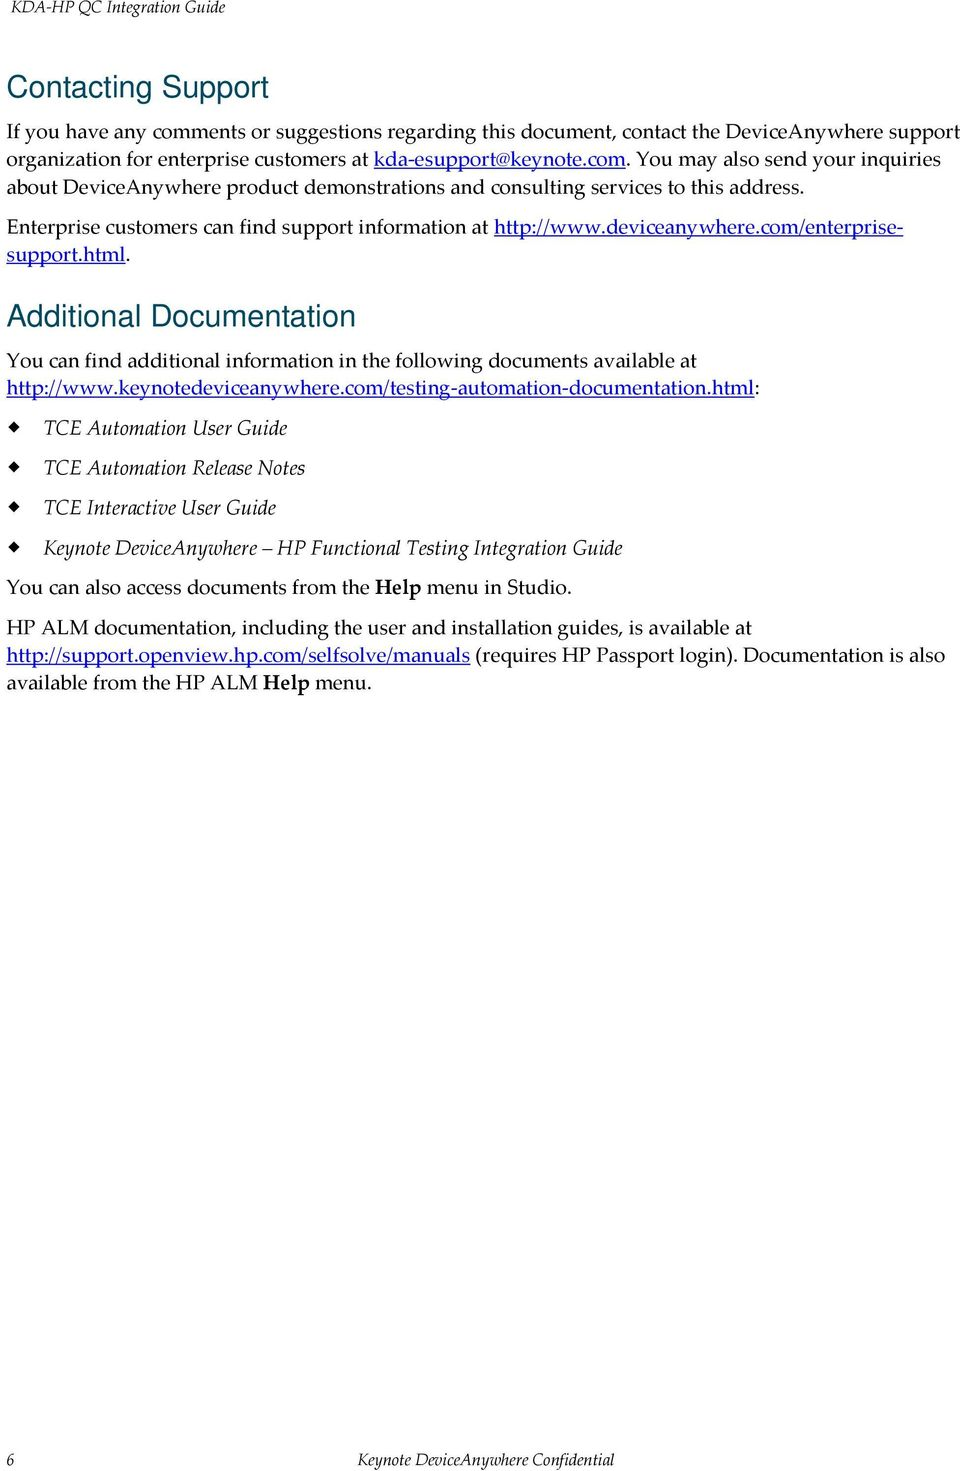 Additional Documentation You can find additional information in the following documents available at http://www.keynotedeviceanywhere.com/testing-automation-documentation.